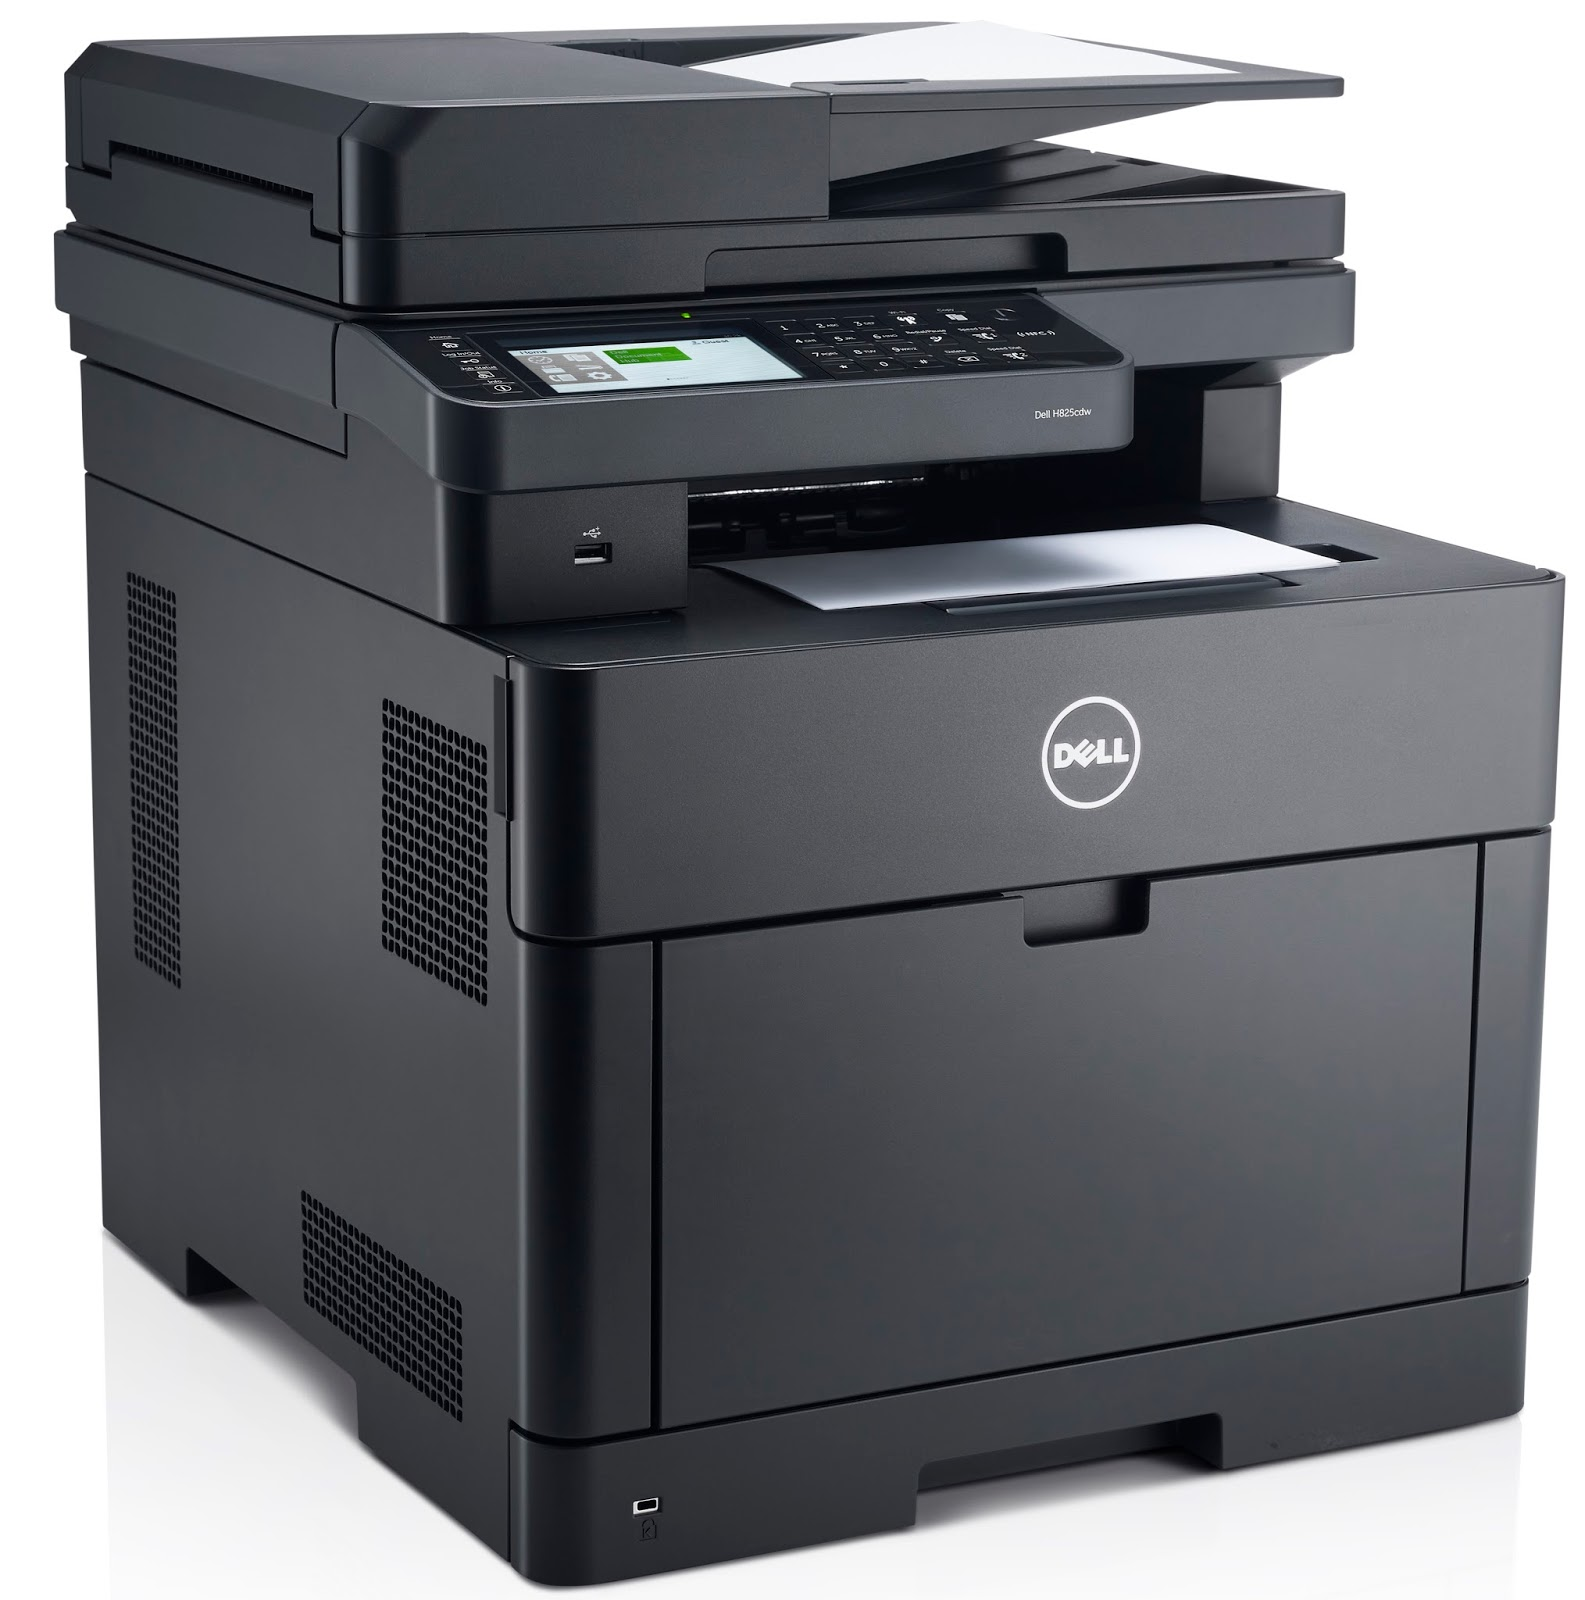 The Market Has A Variety Of Small Printers For Laser Printer Been Available In Some Time Now And Prices Are Becoming